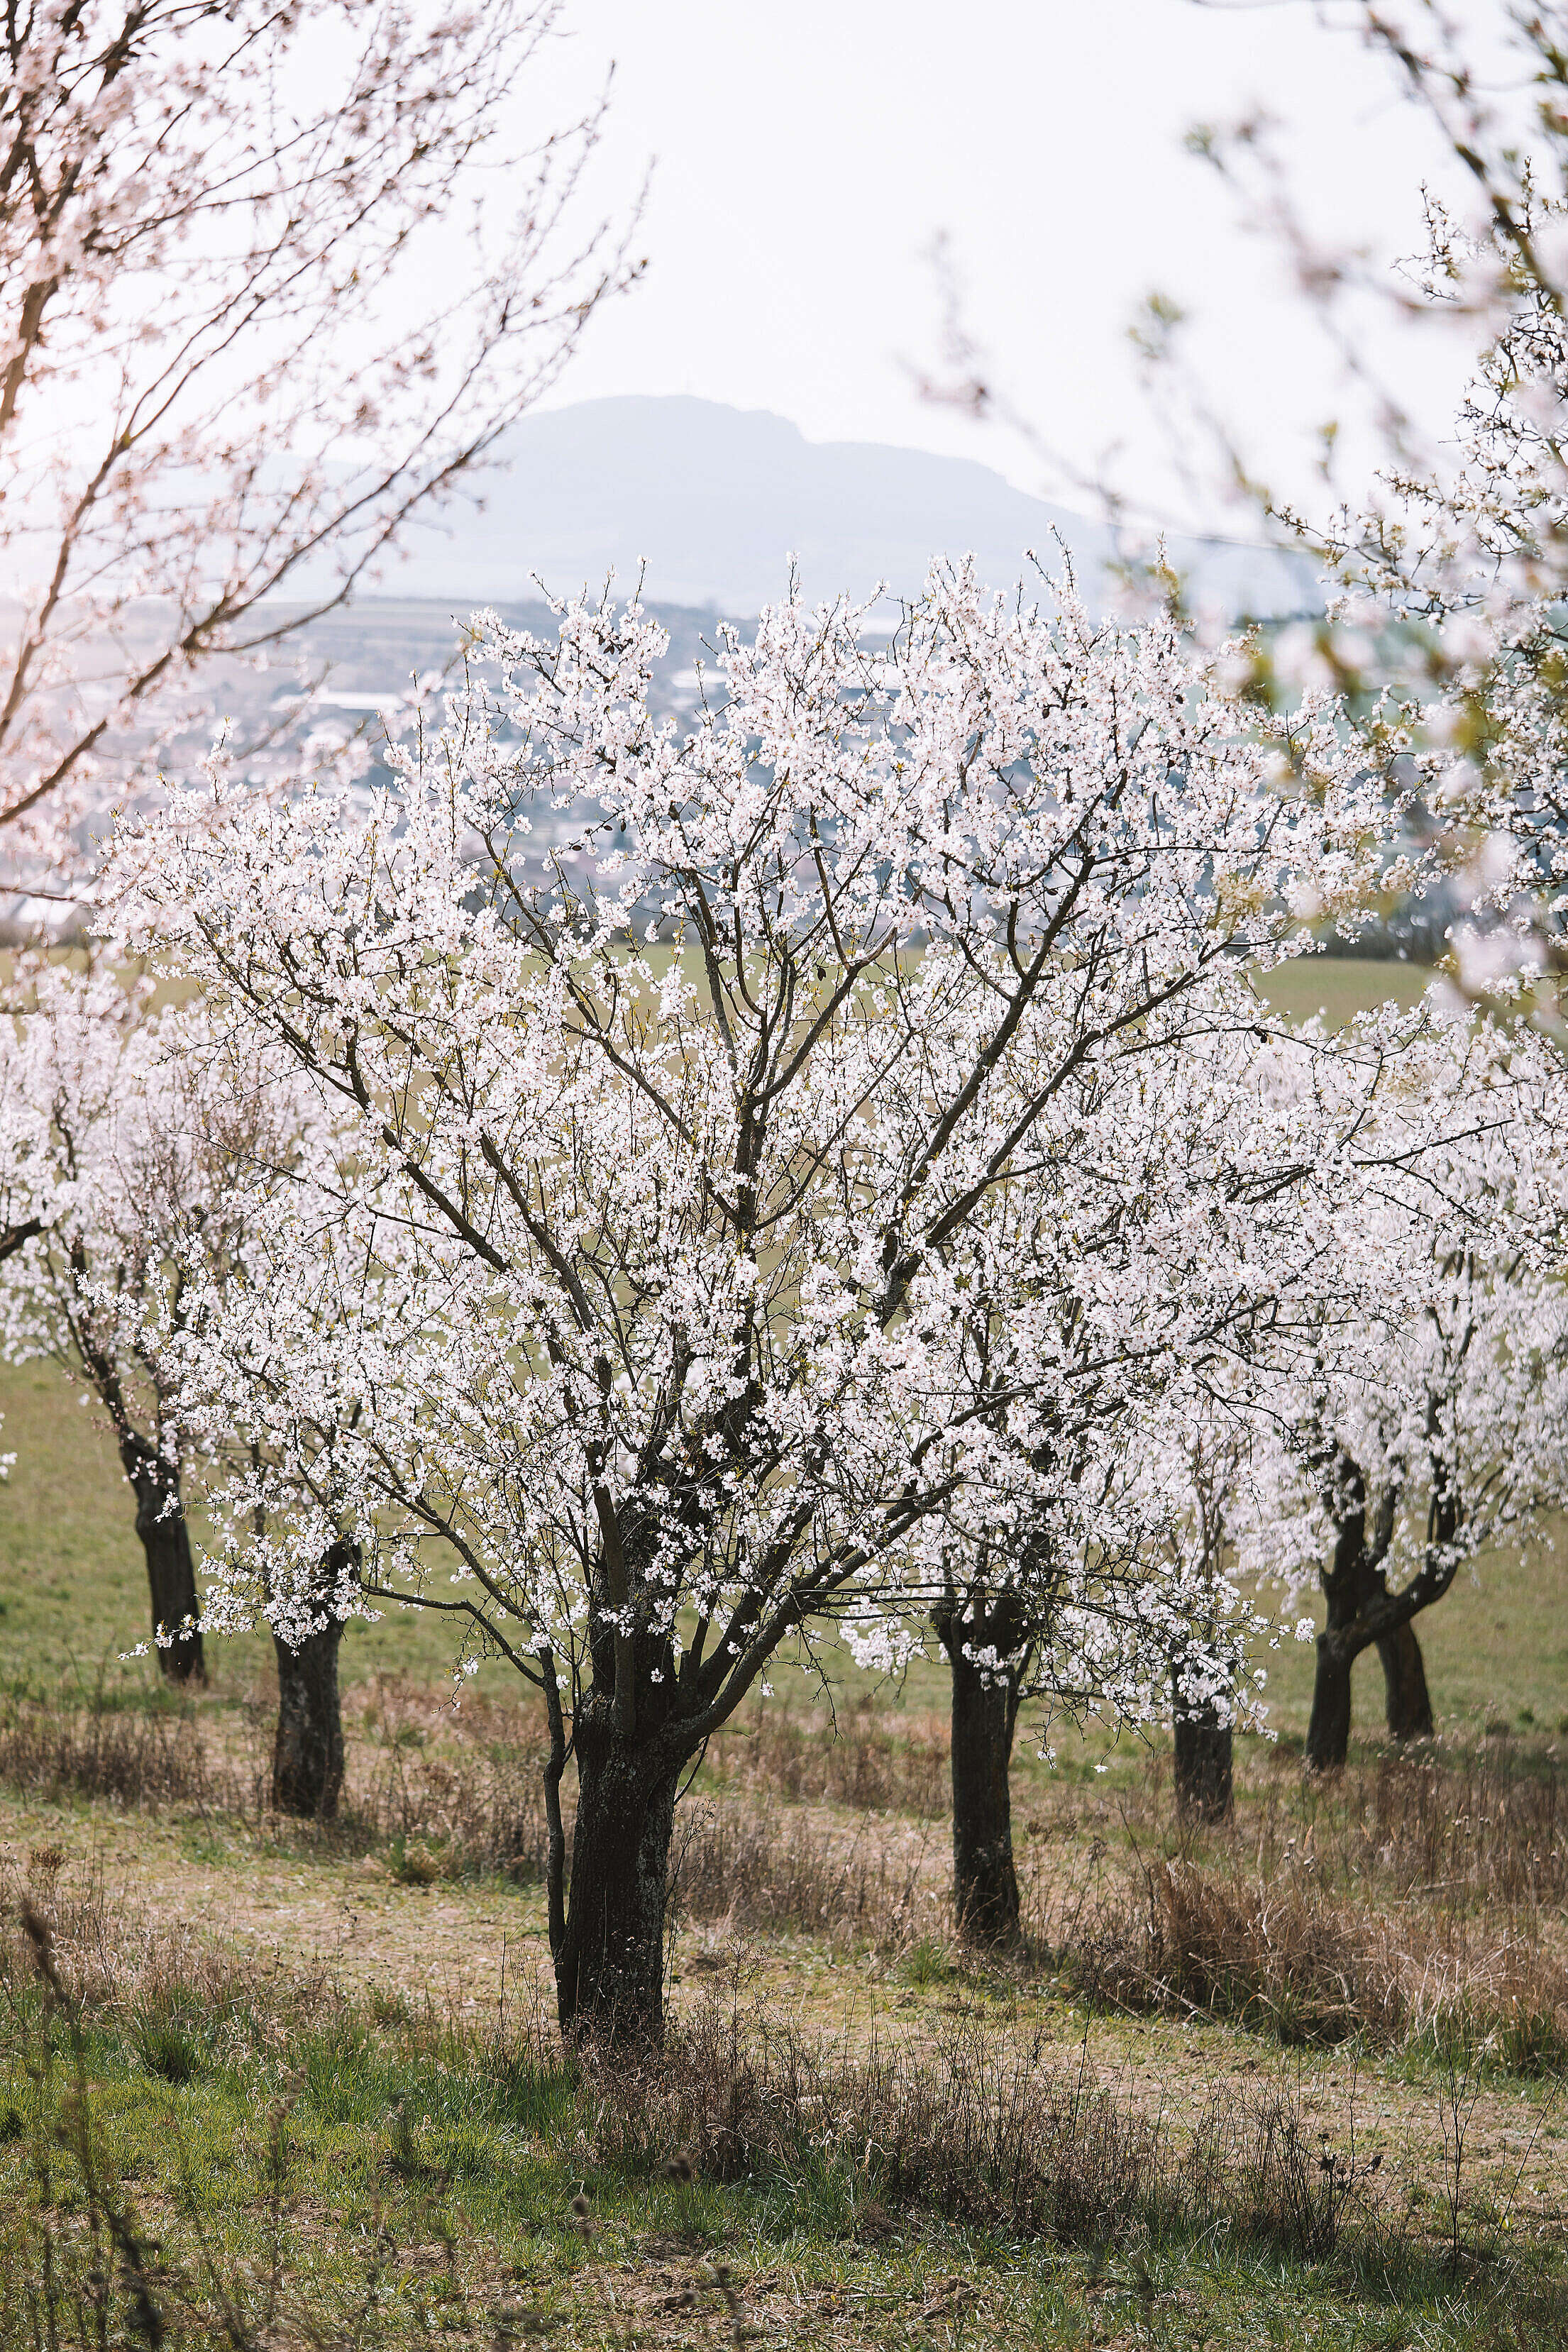 Blooming Almond Trees Free Stock Photo